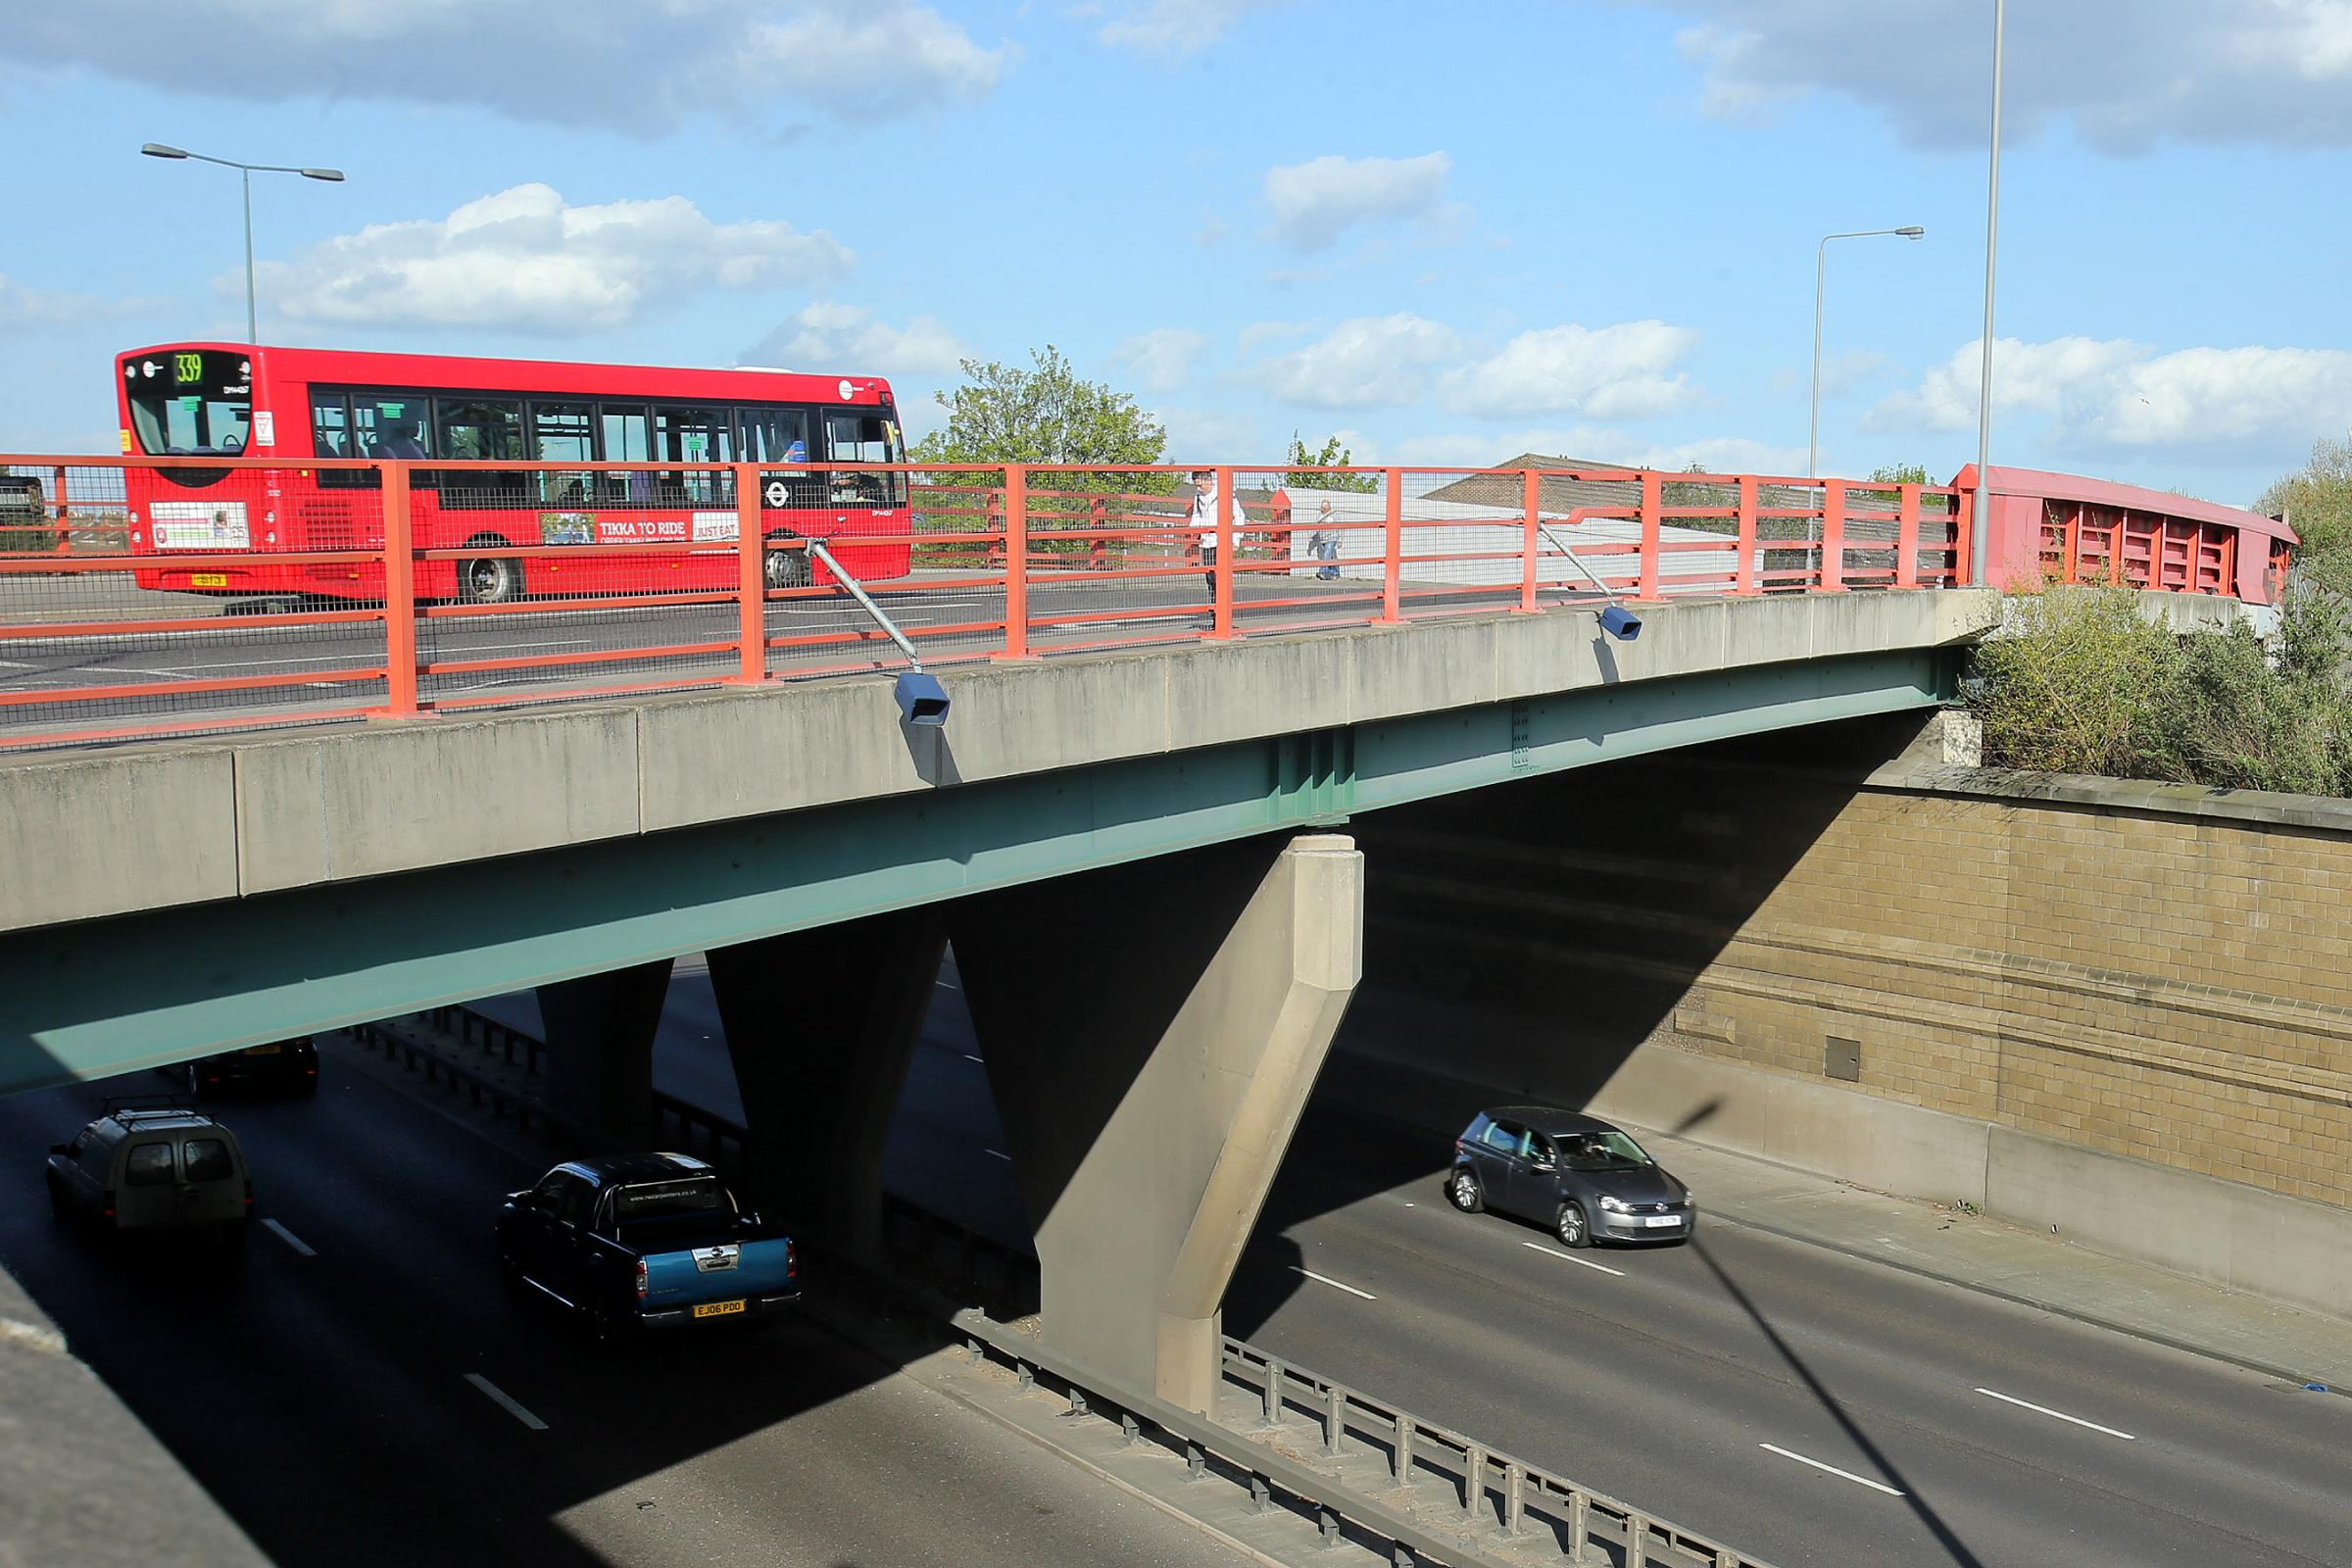 The suicidal girl was found on Cathall Road bridge